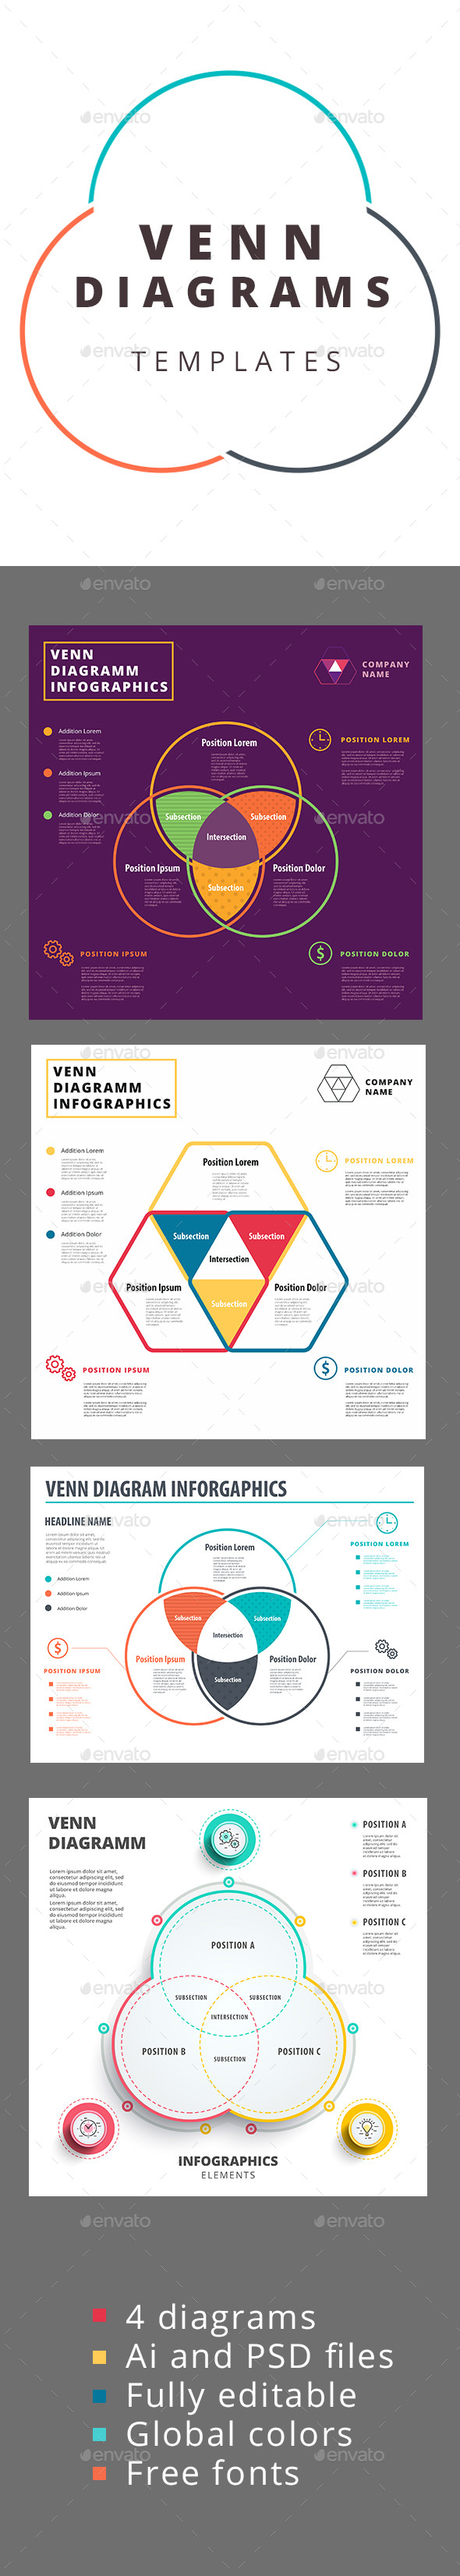 Venn diagram templates - Infographics